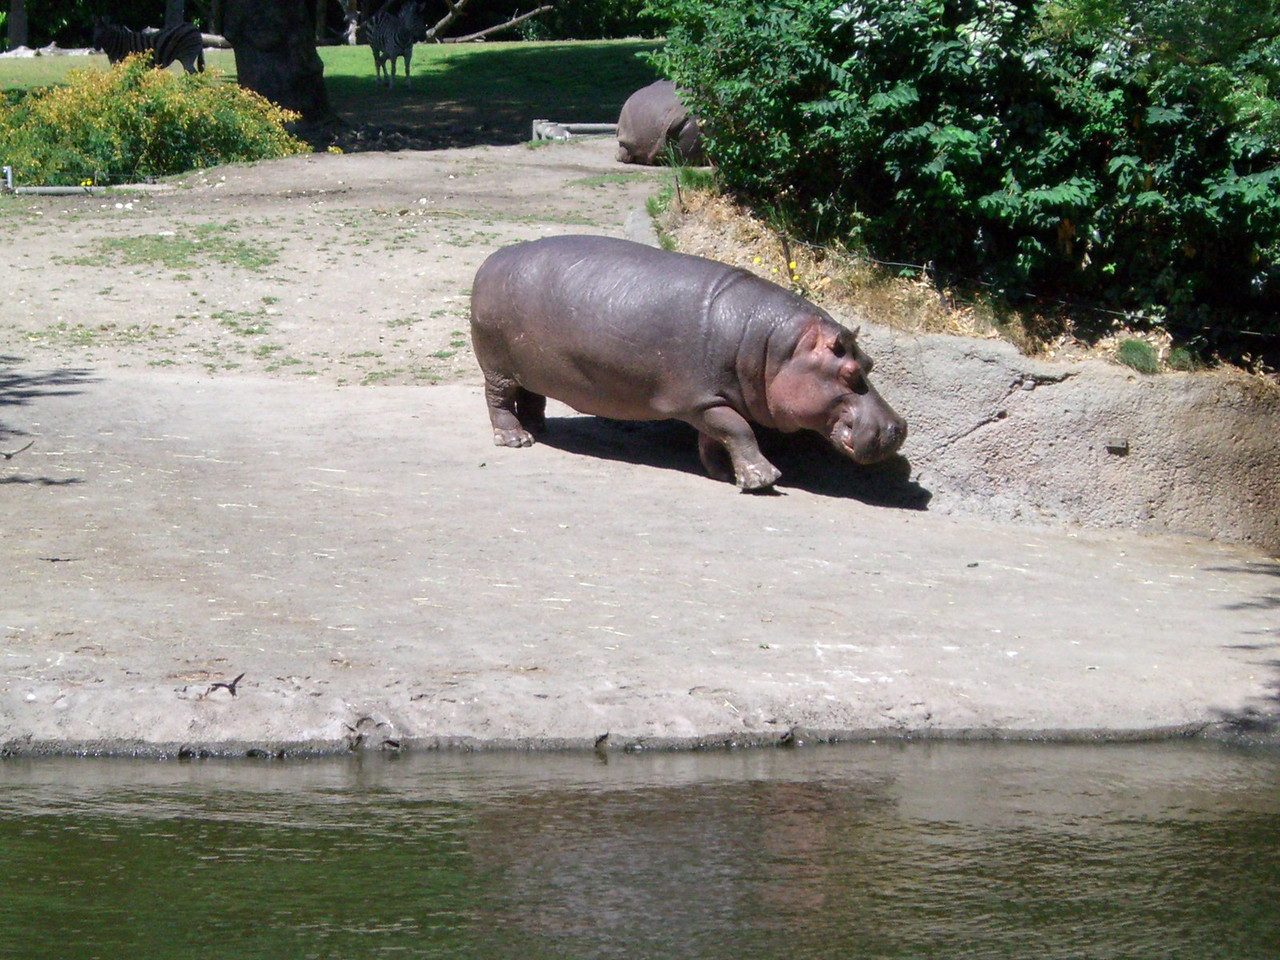 We got to see the hippos up close and personal! One was out of the water while the other was in. These things are huge! Kimber loved it.